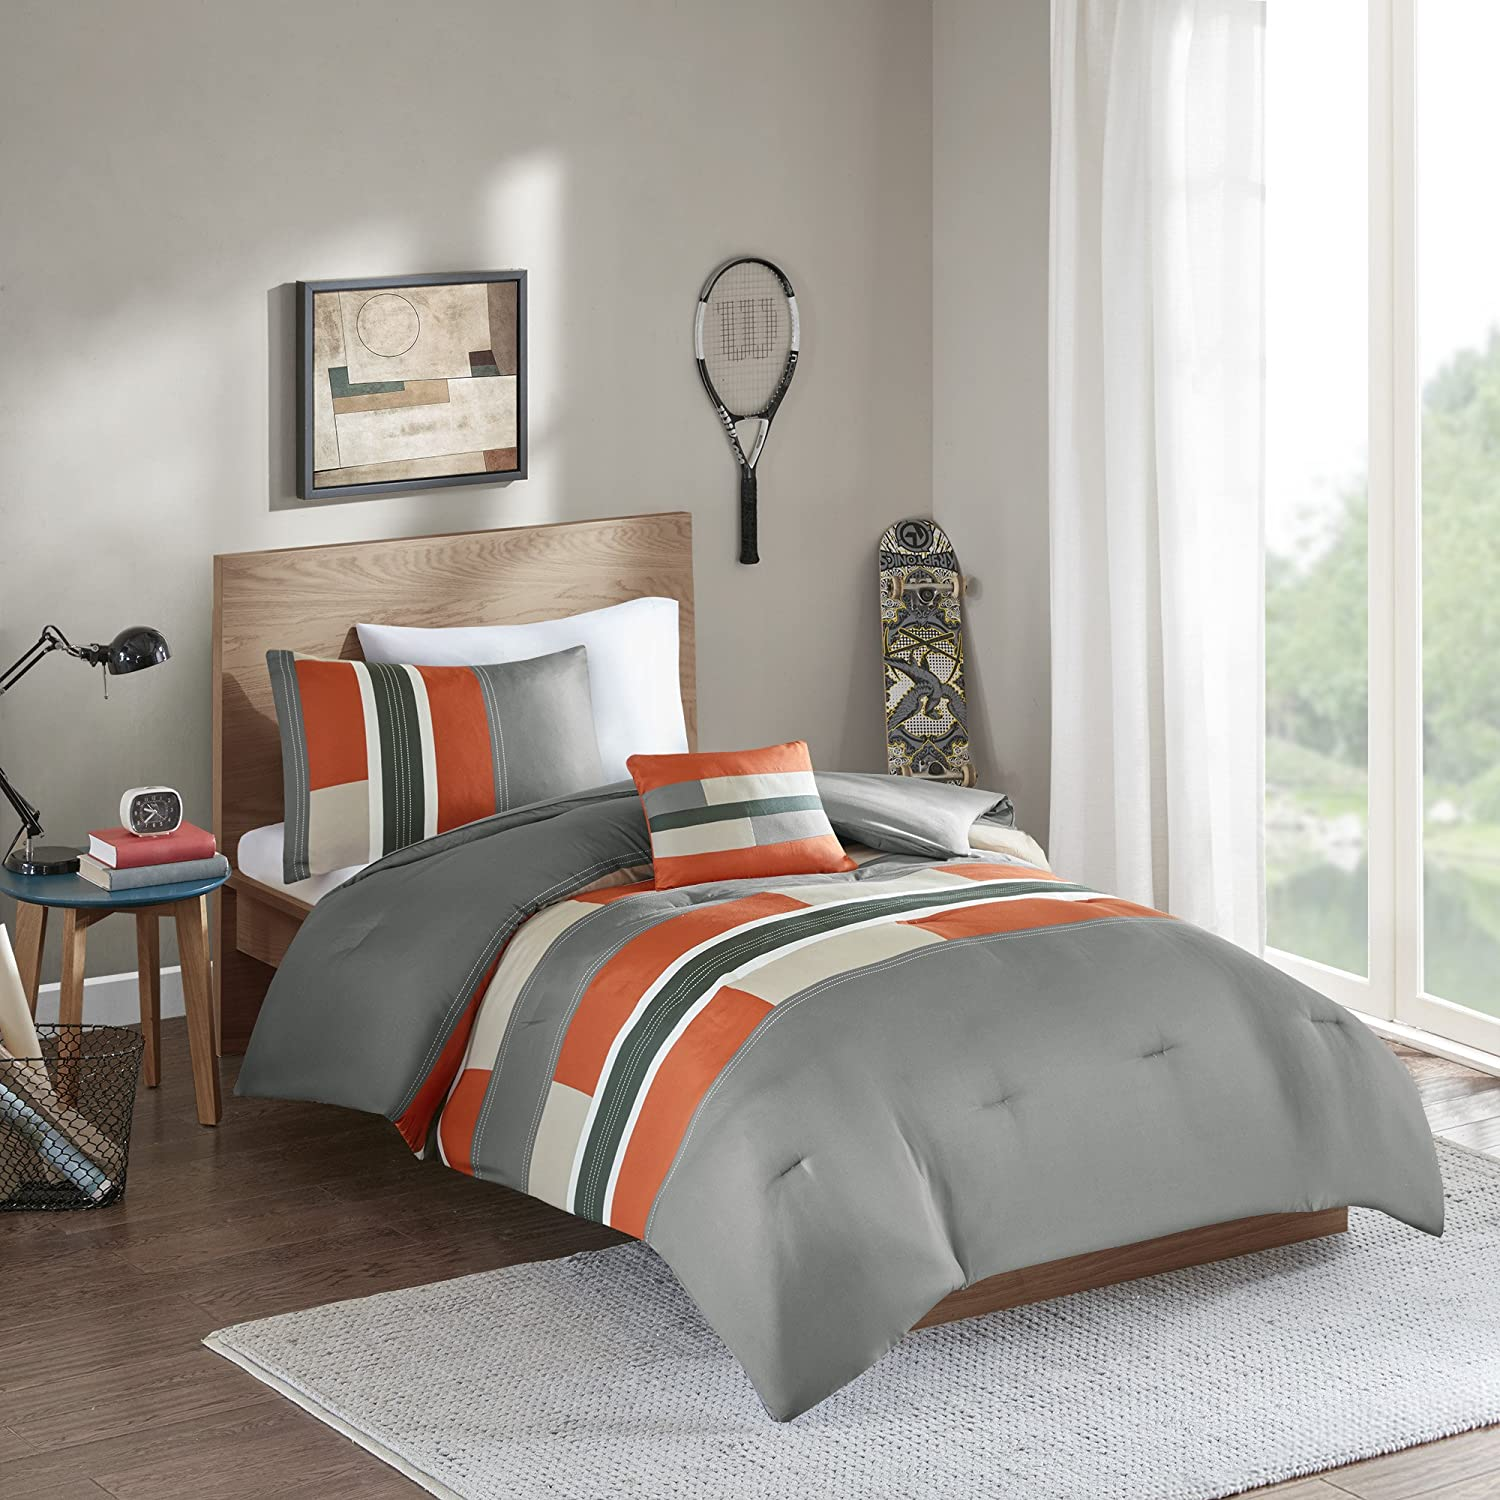 Amazon fort Spaces Pierre forter Set 3 Piece Gray